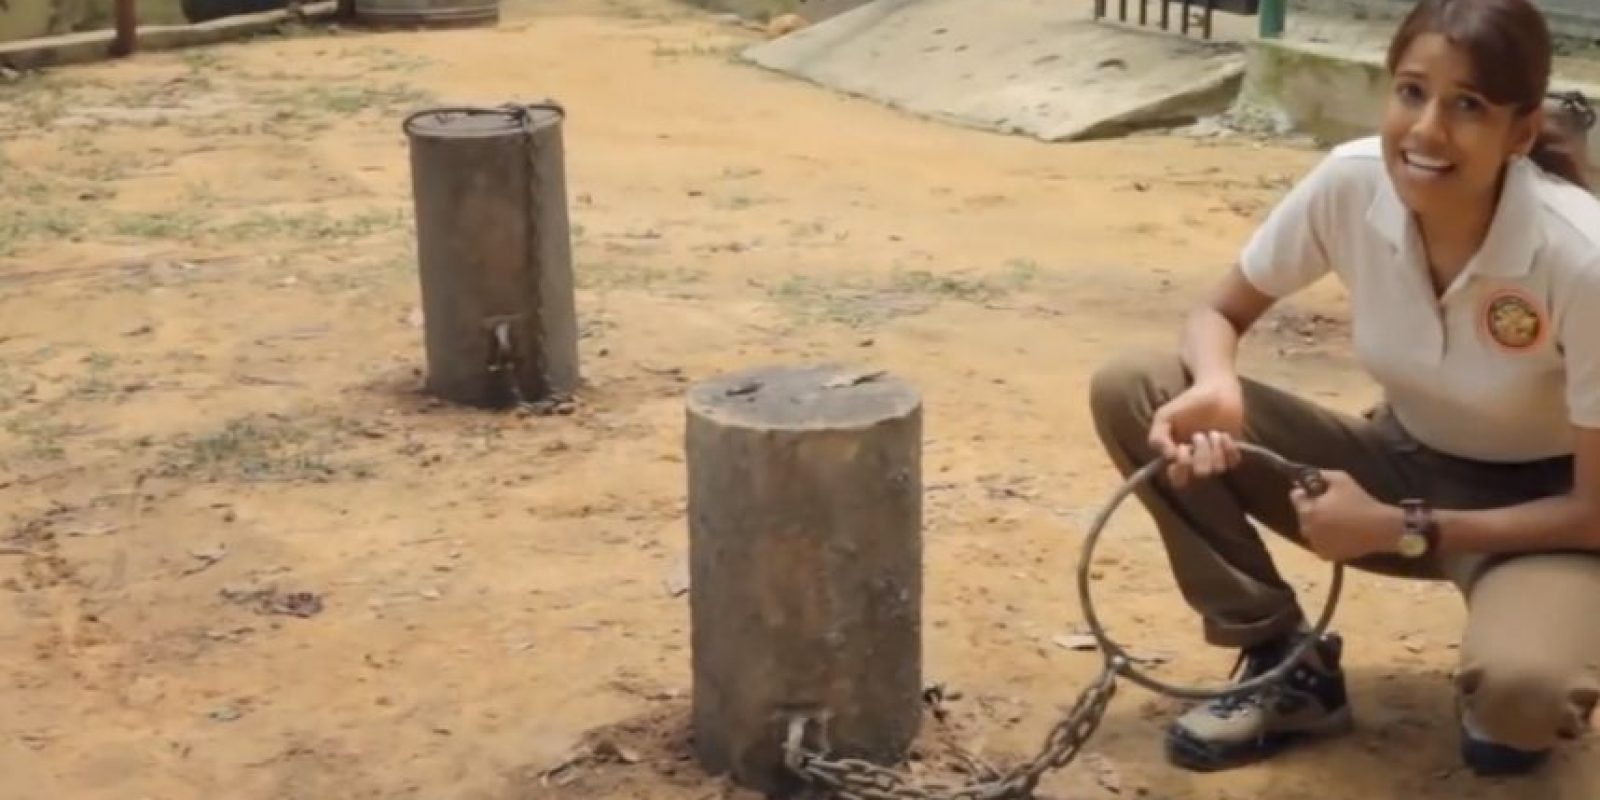 Los amarran al suelo con cadenas que apenas y los dejan caminar. Foto: YouTube/ World Animal Protection